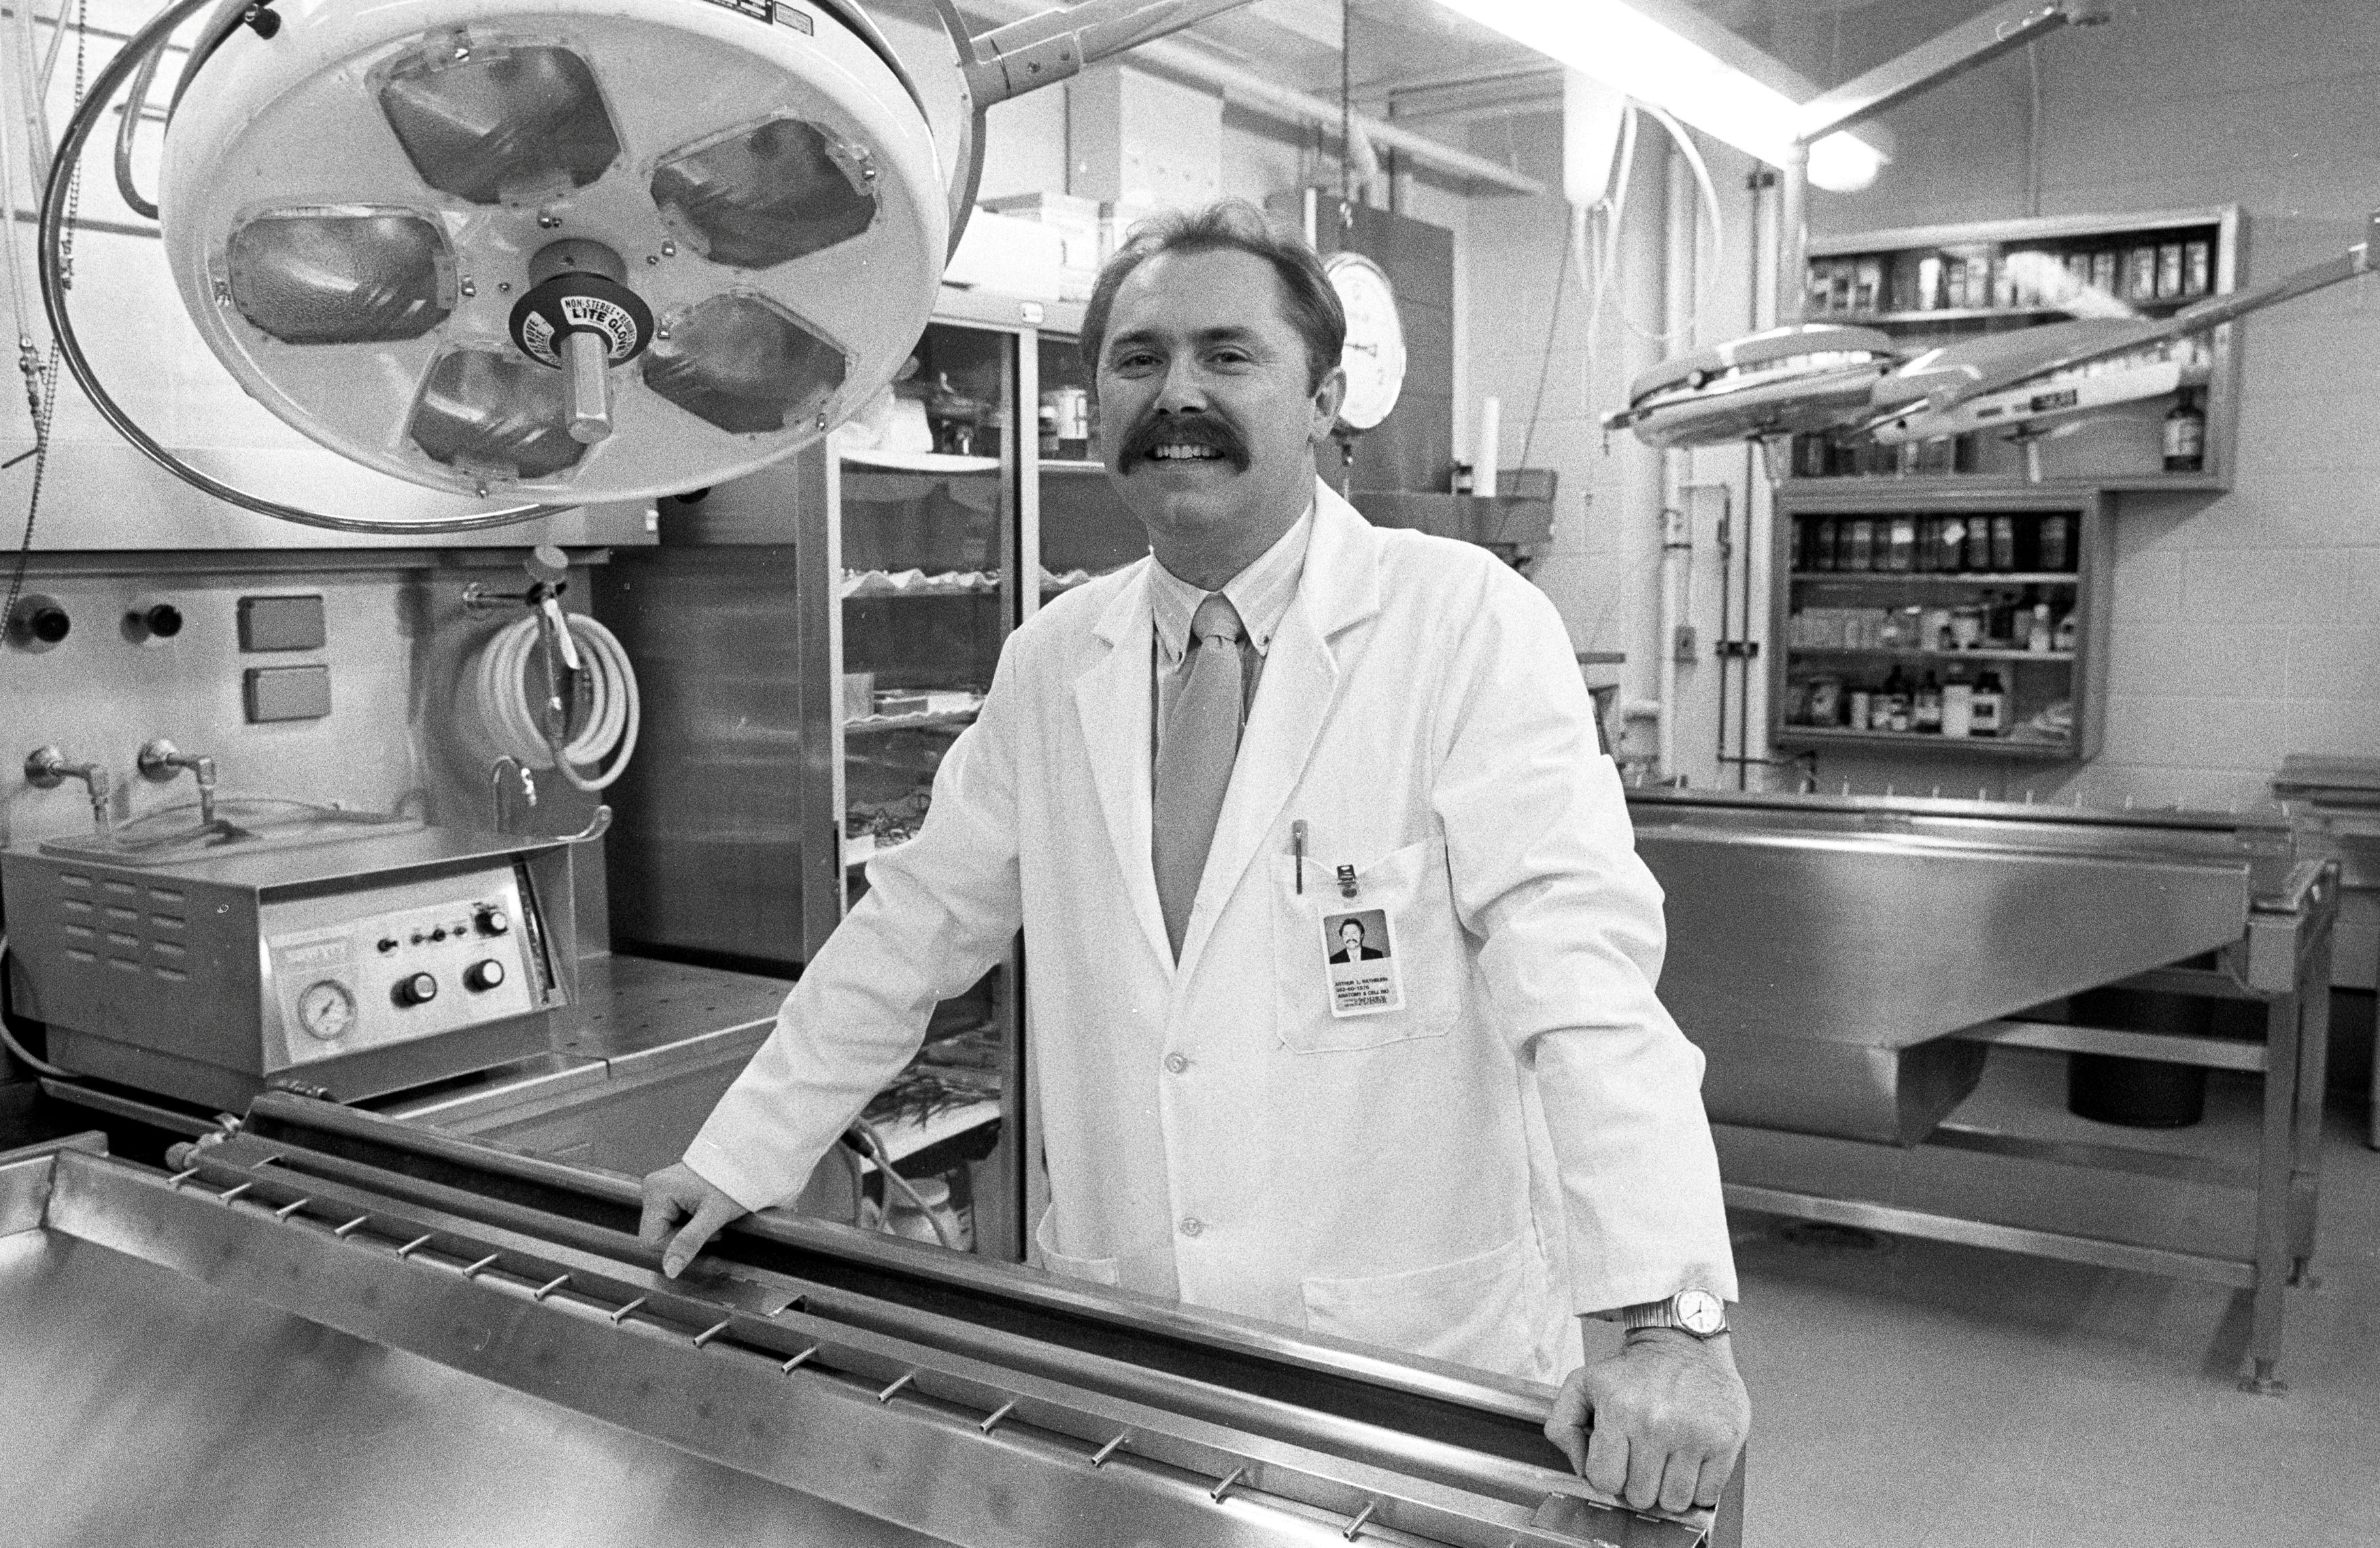 Arthur Rathburn is pictured at the University of Michigan in Ann Arbor, Michigan, U.S. in November 1988.